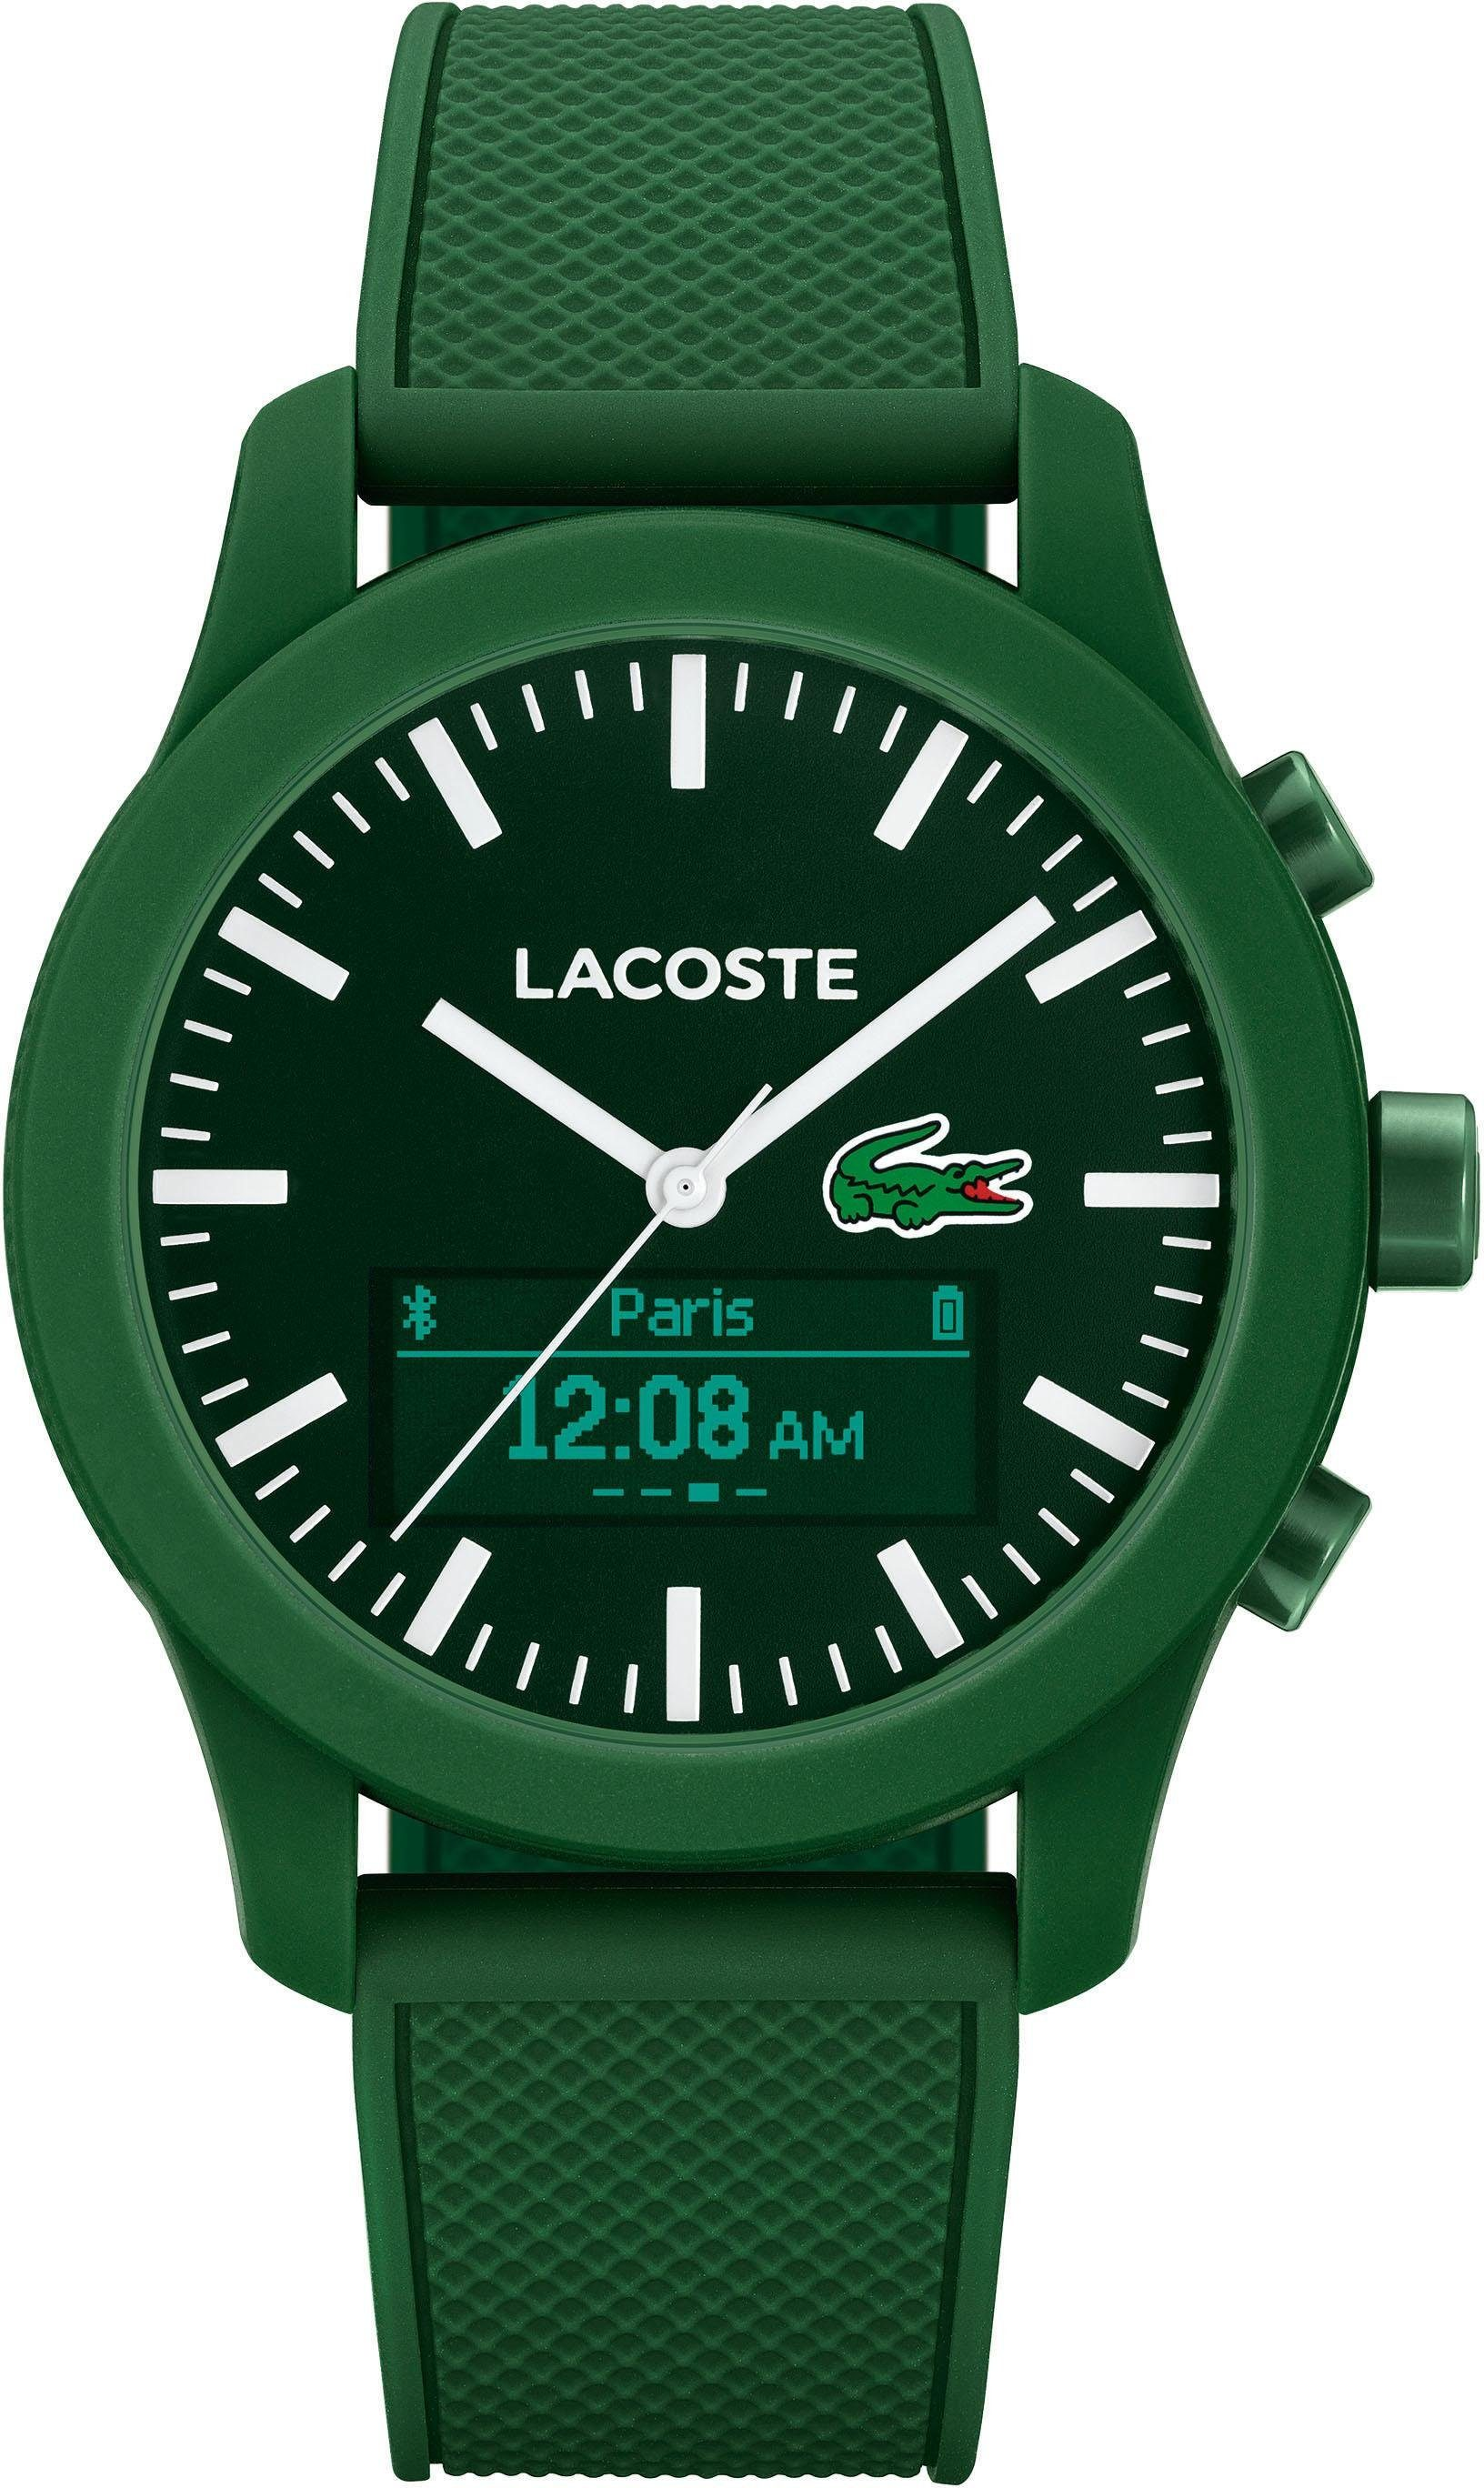 Lacoste LACOSTE.12.12 CONTACT, 2010883 Smartwatch